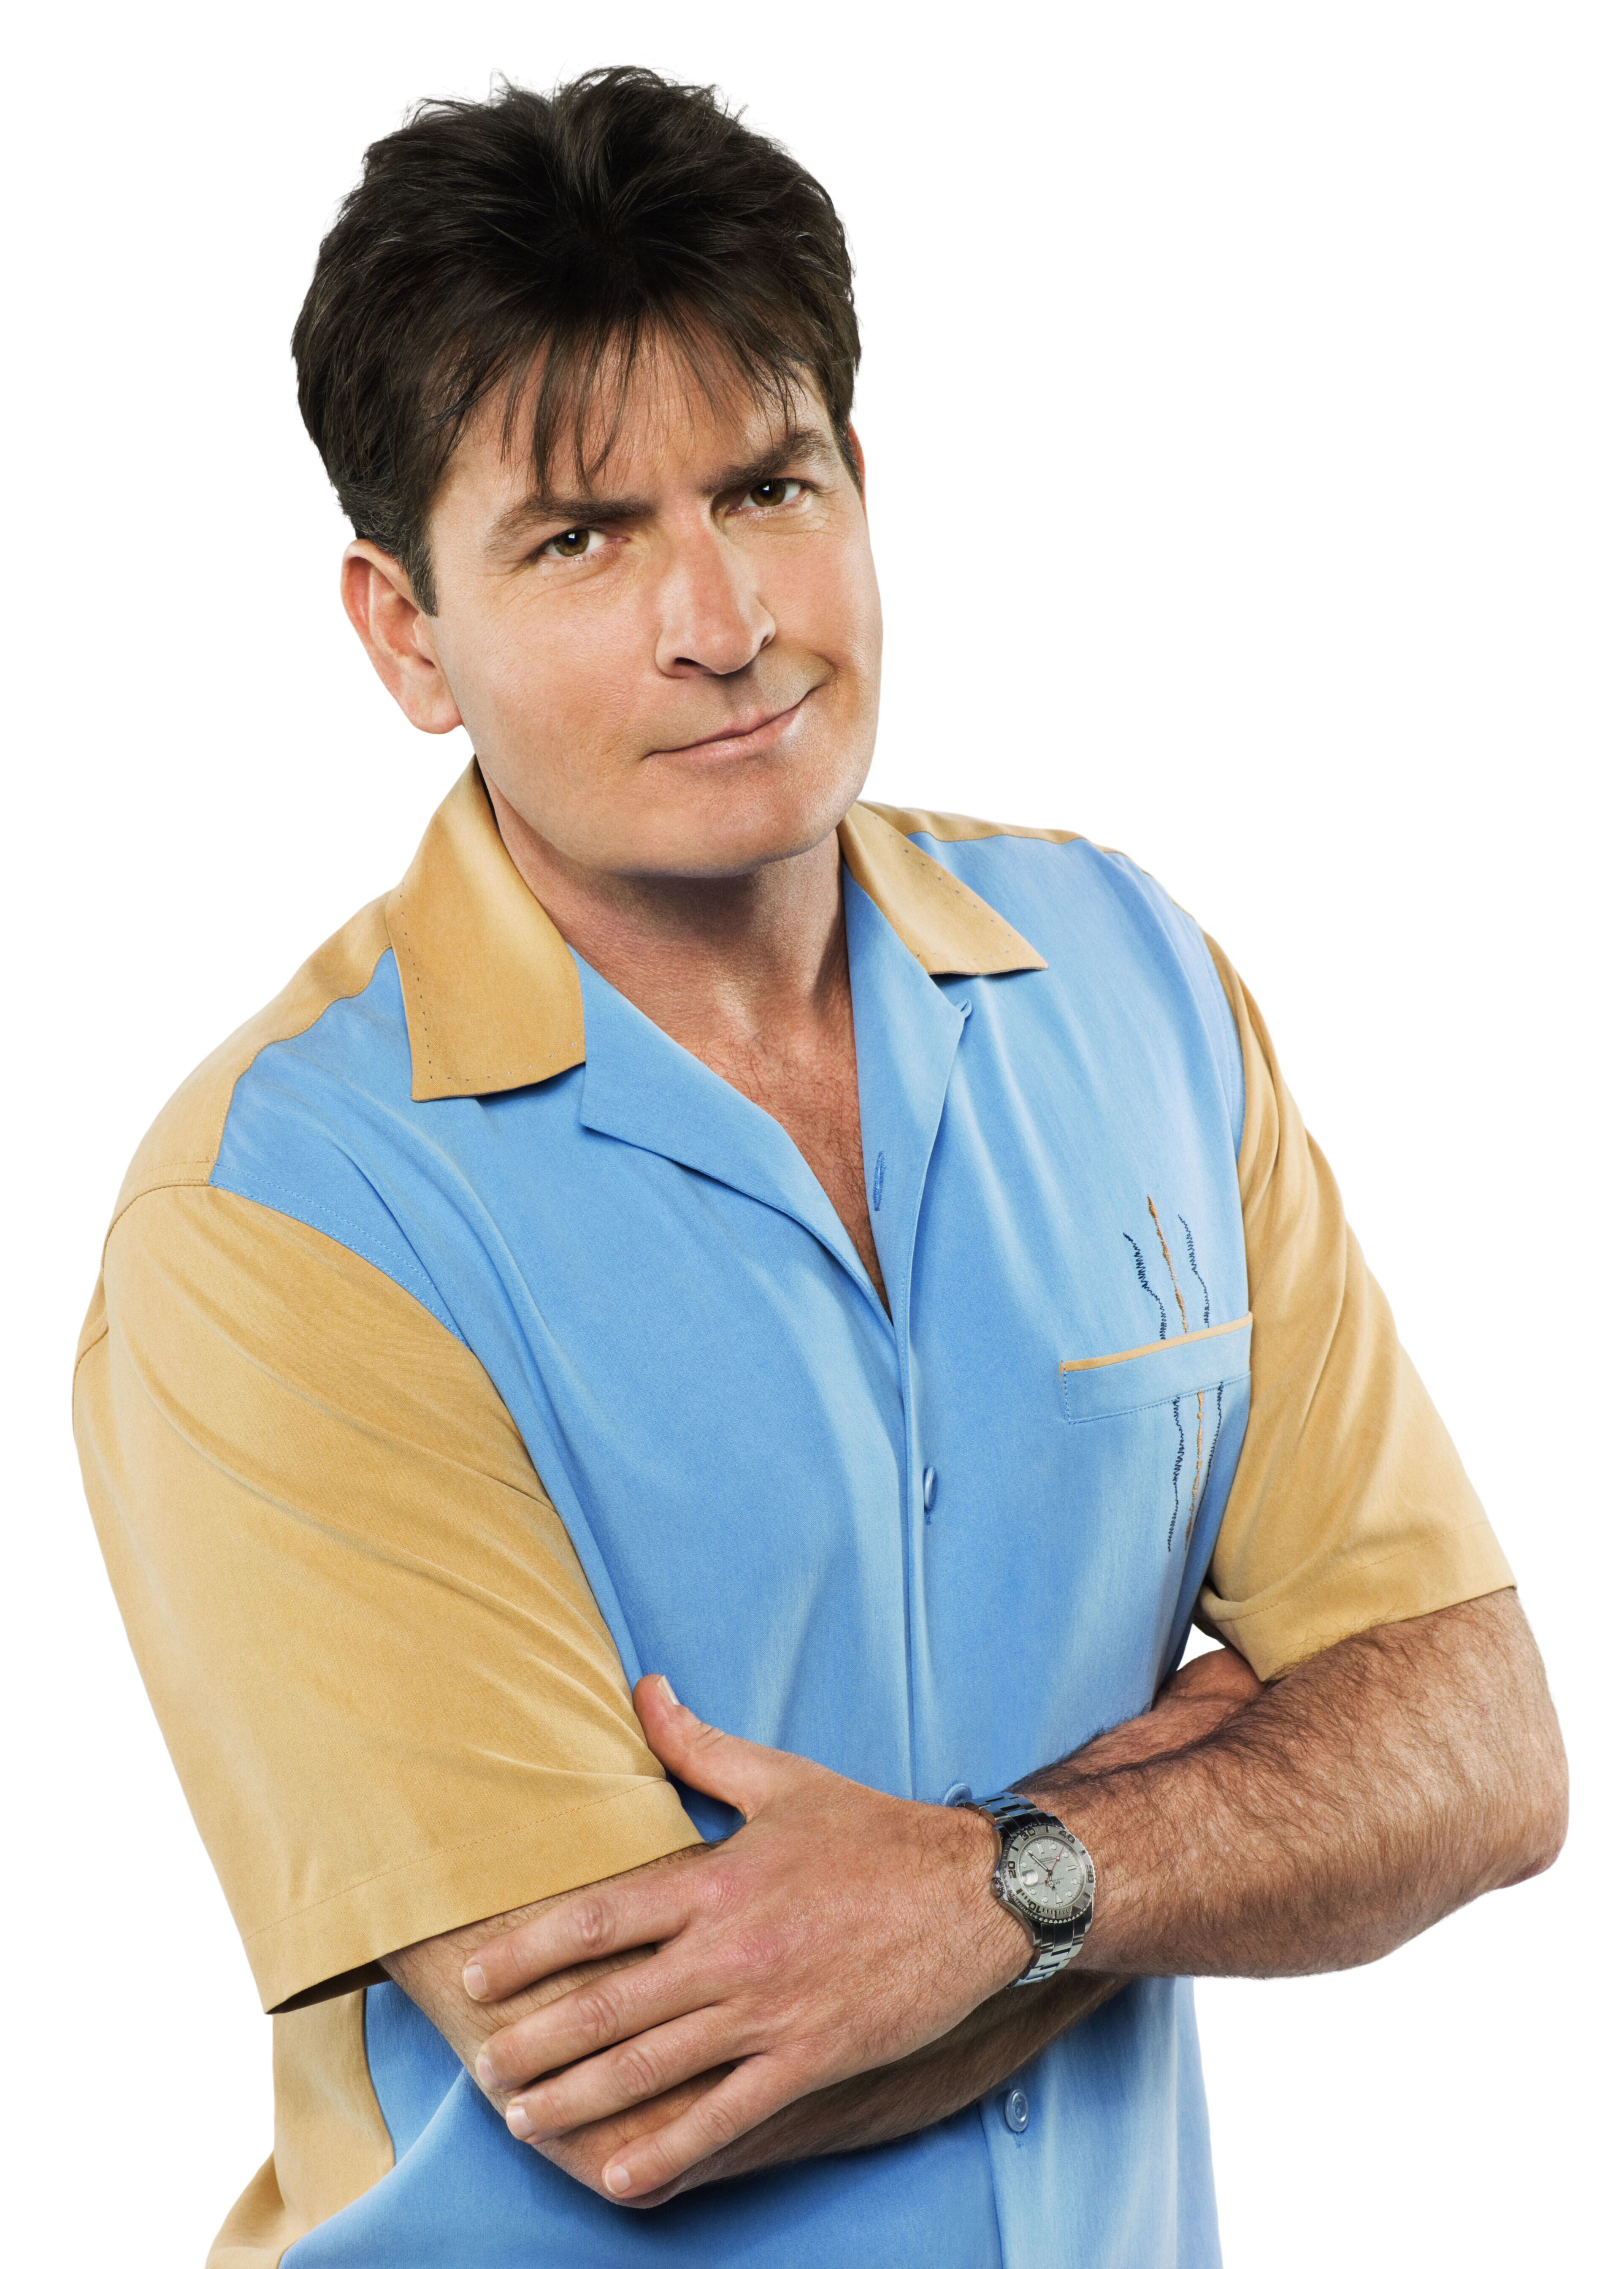 """Charlie Sheen as Charlie Harper in a promotional photo for CBS's """"Two and A Half Men"""" in 2003."""